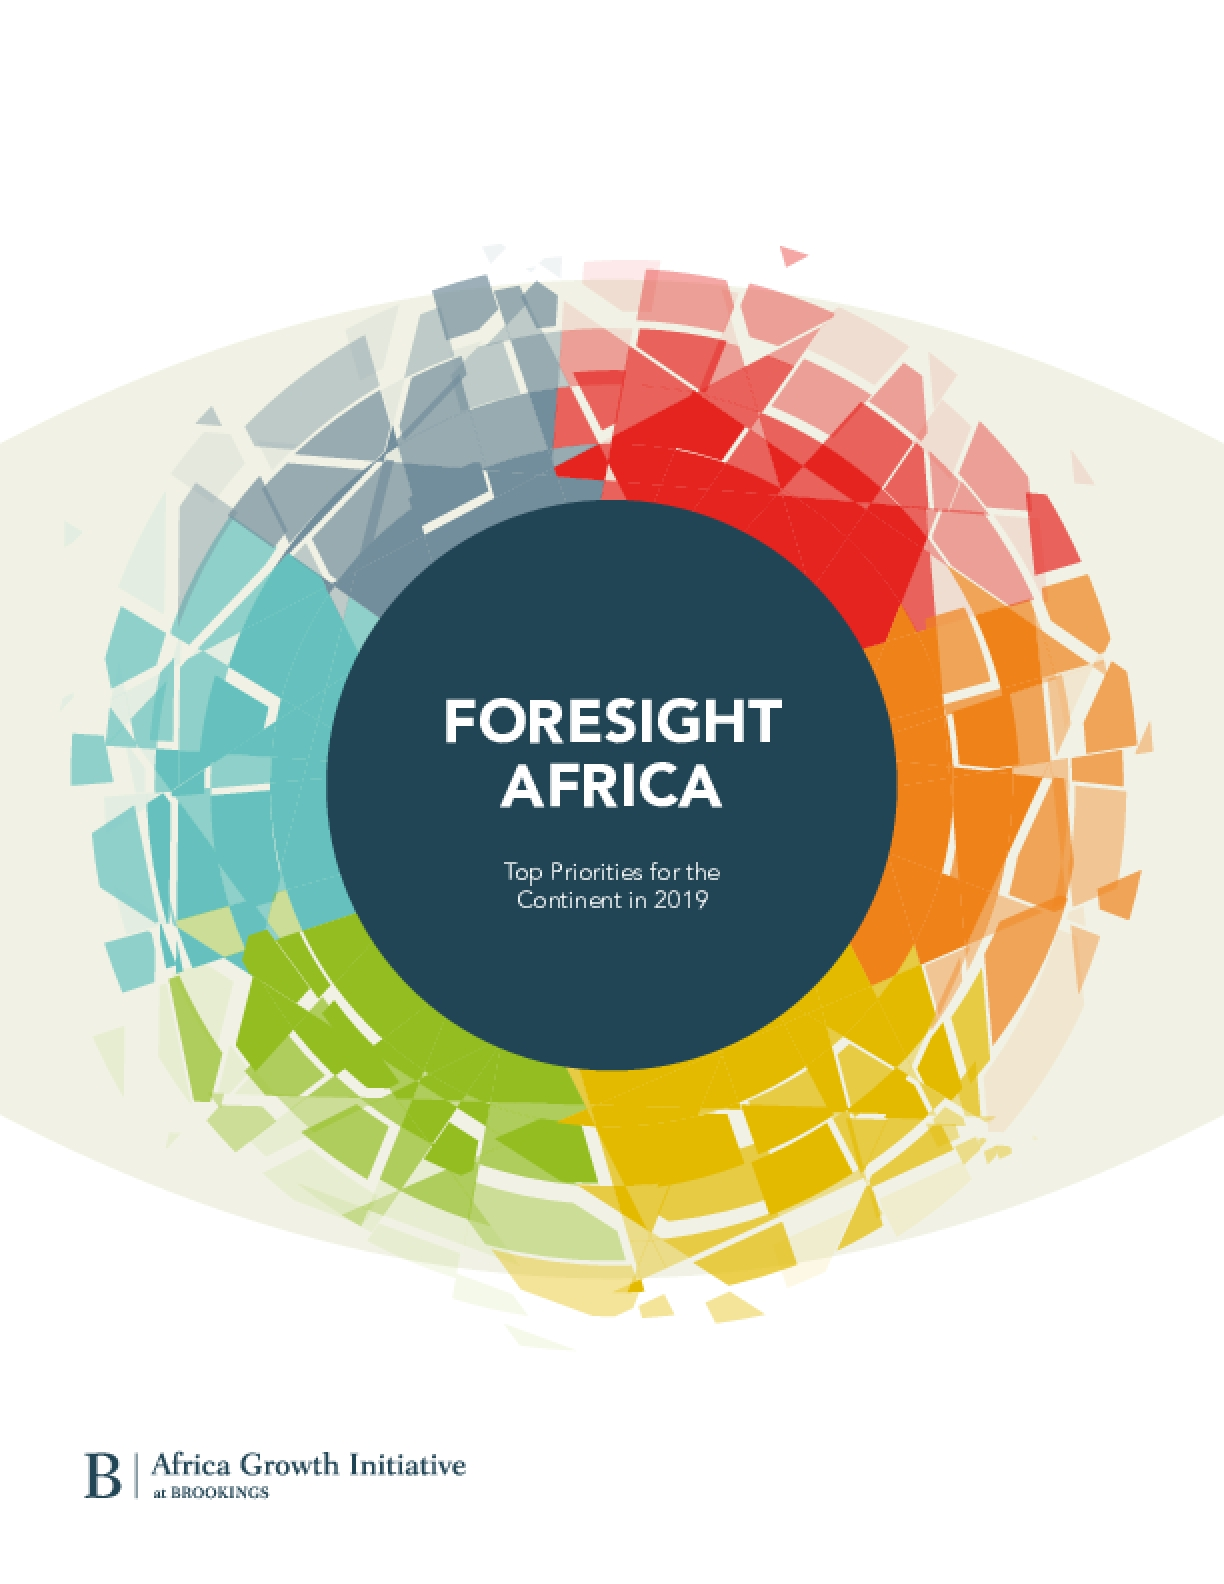 Foresight Africa: Top priorities for the continent in 2019